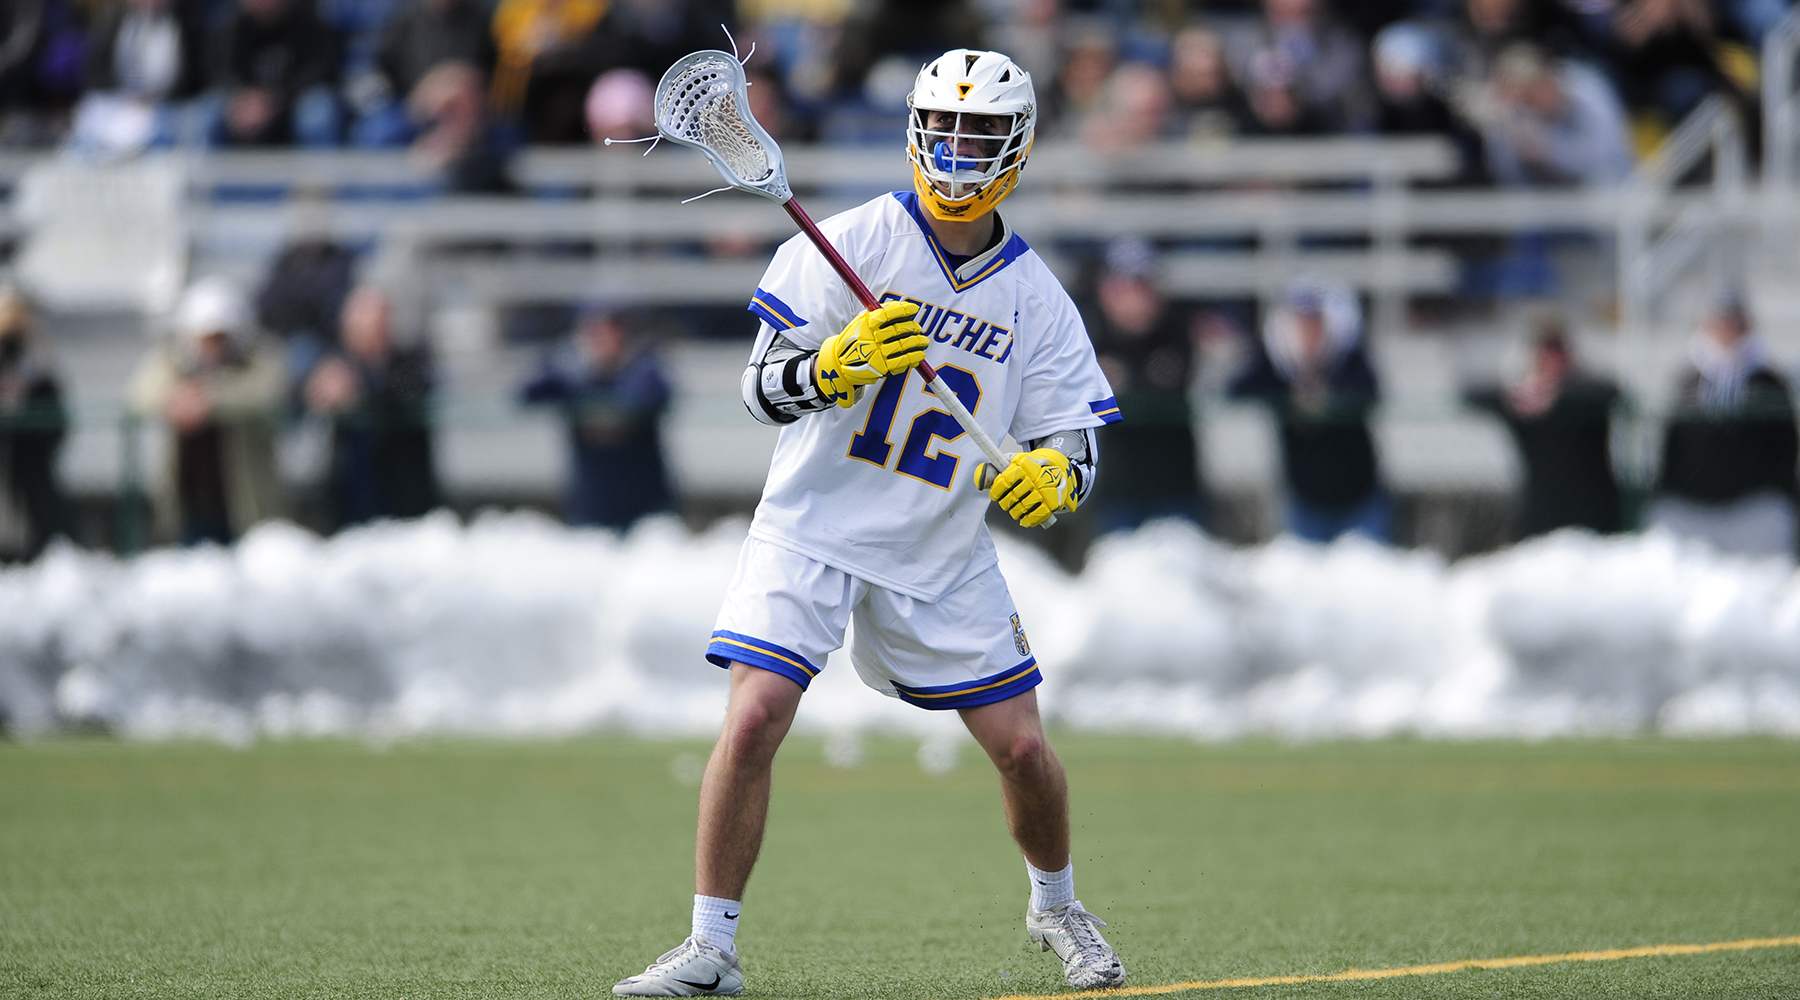 Sade's Late Goal Lifts Men's Lacrosse Past Centre, 10-9